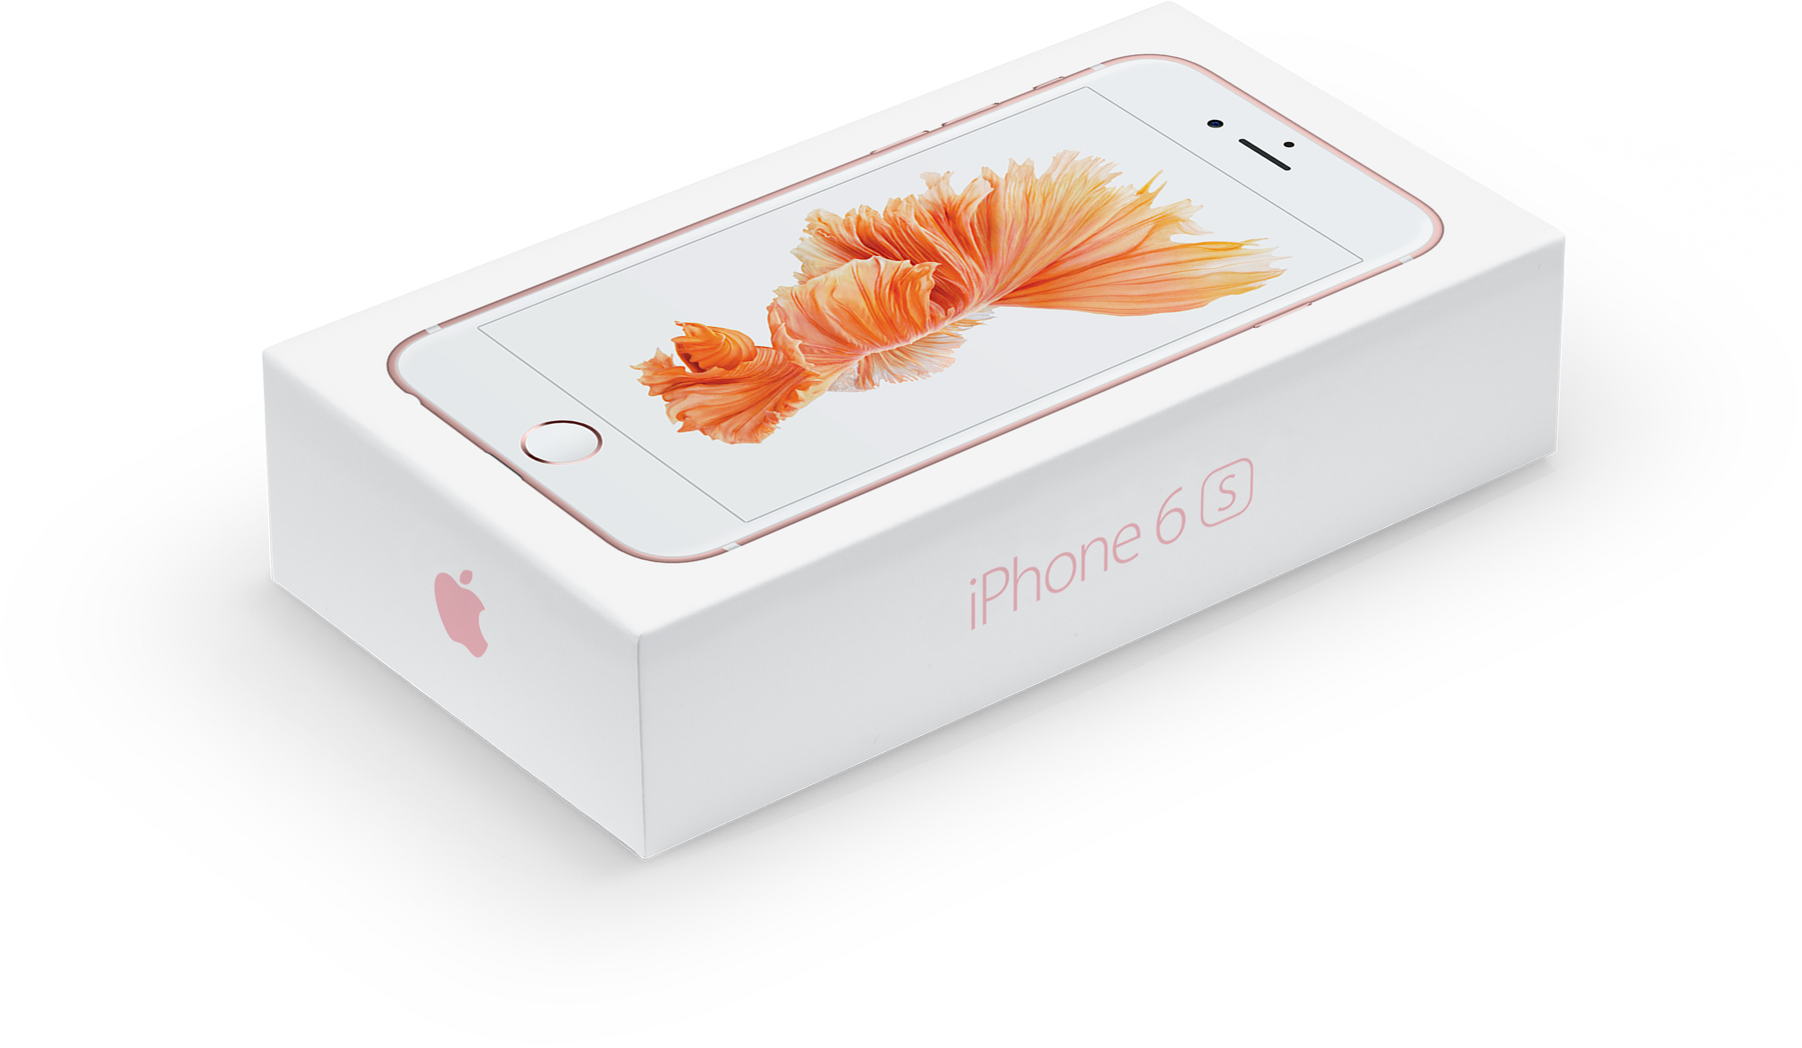 iPhone 6s box rose gold